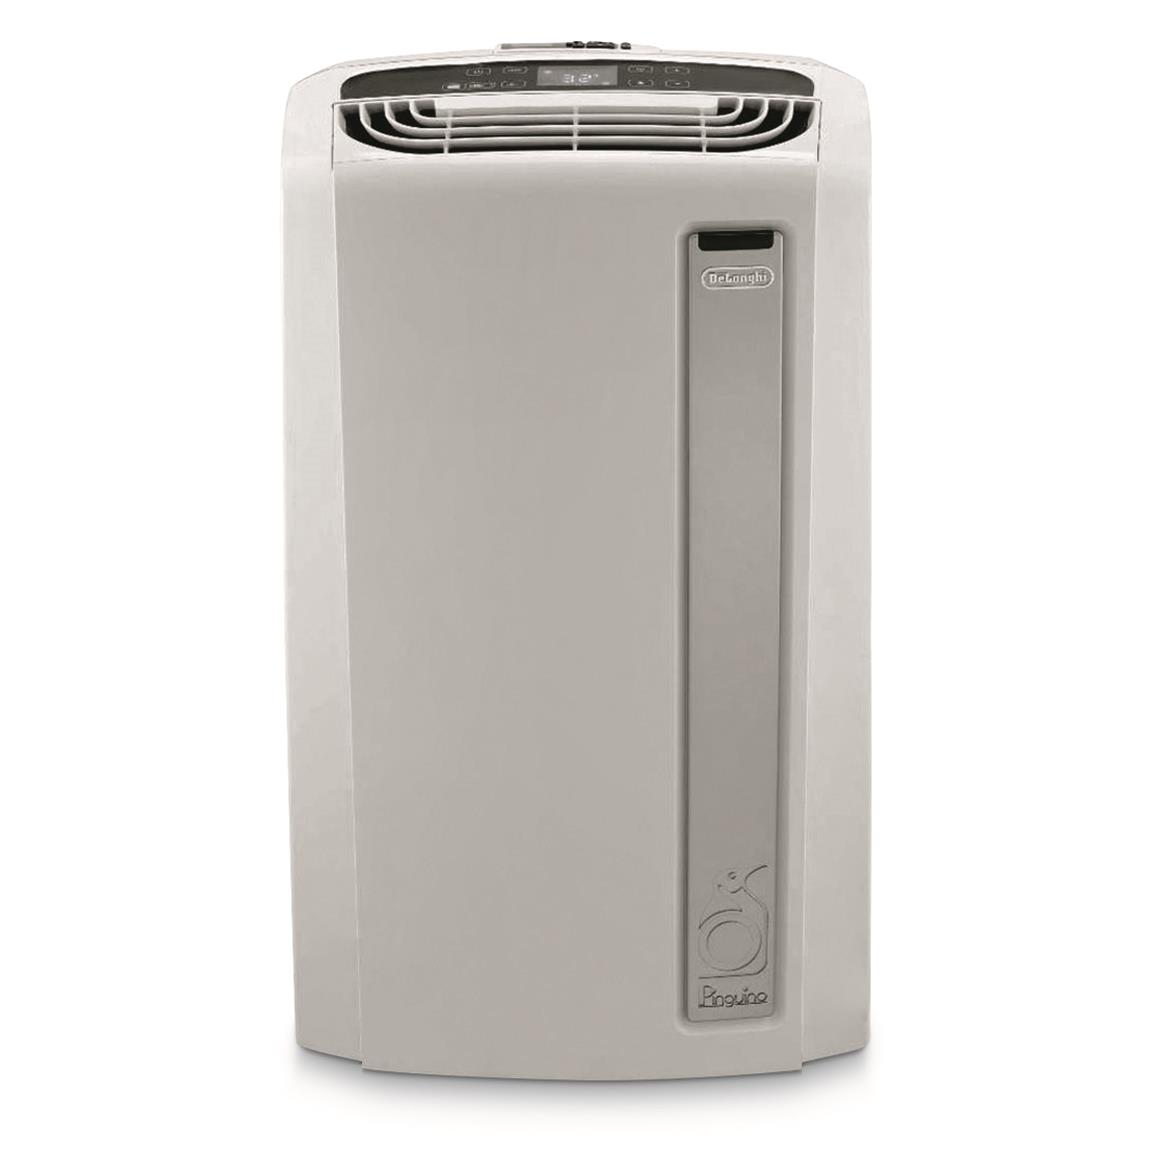 DeLonghi Pinguino 14,000 Whisper Quiet Portable Air Conditioner with Heat Pump, Reconditioned